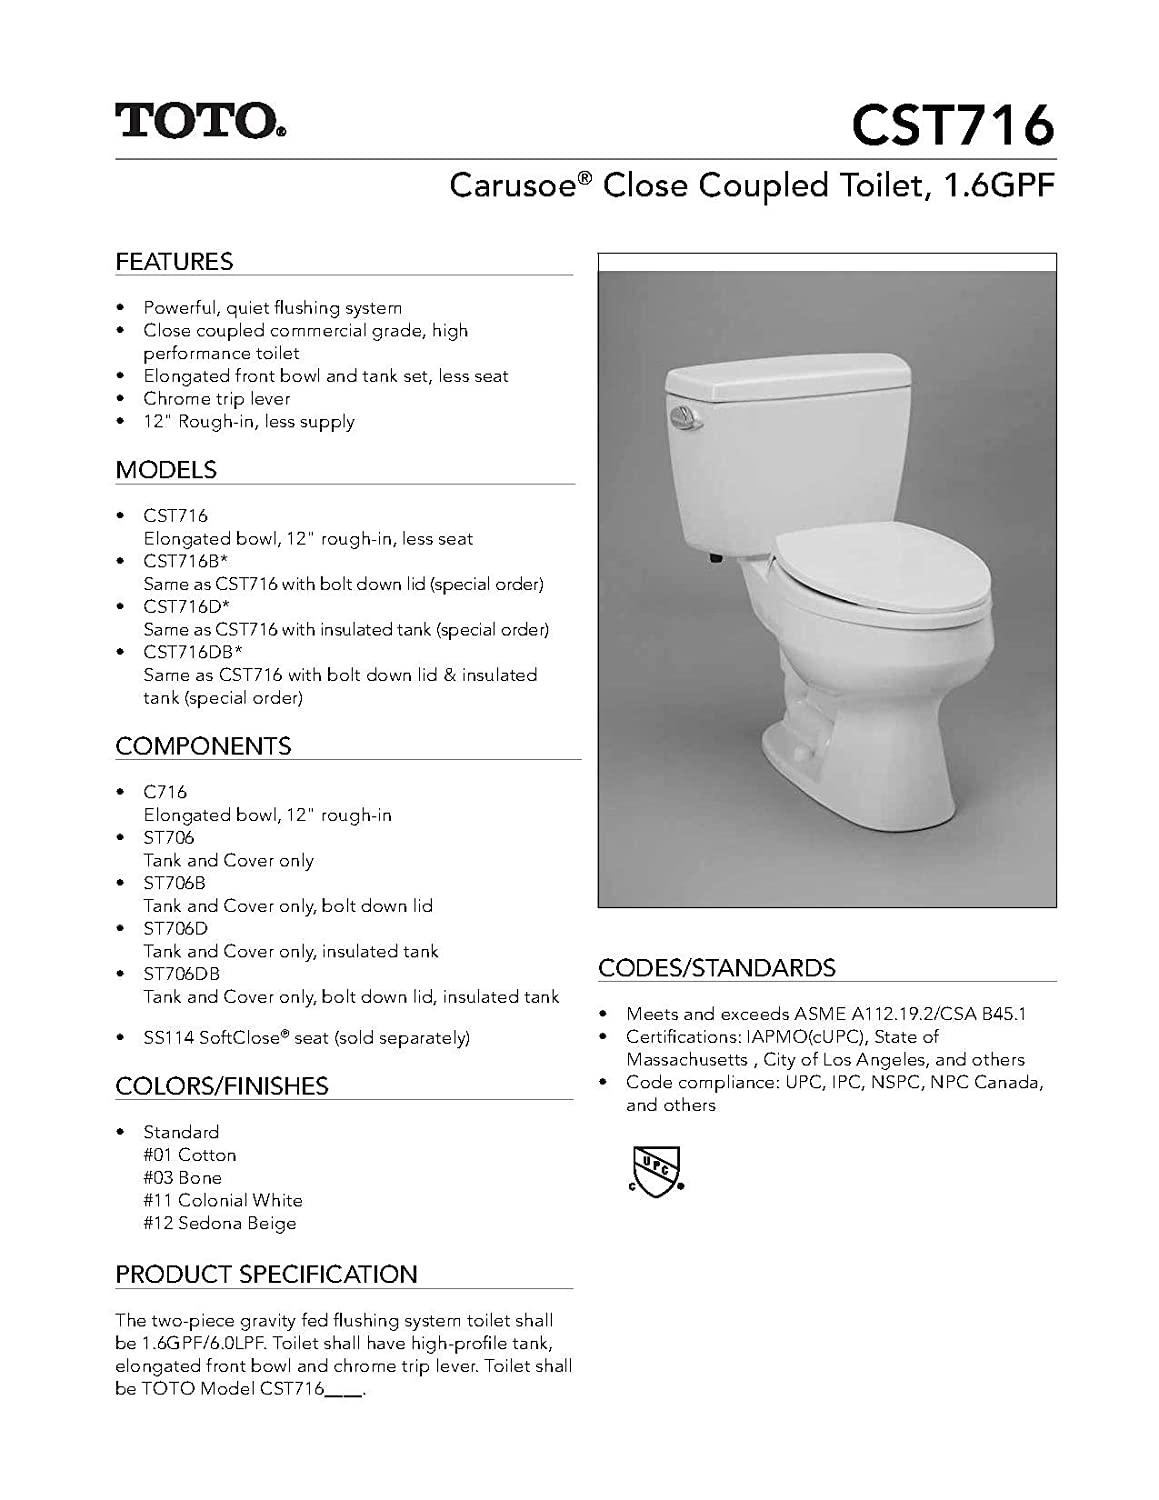 Toto CST716DB Sedona Beige Carusoe Two Piece Toilet, Insulated Tank ...